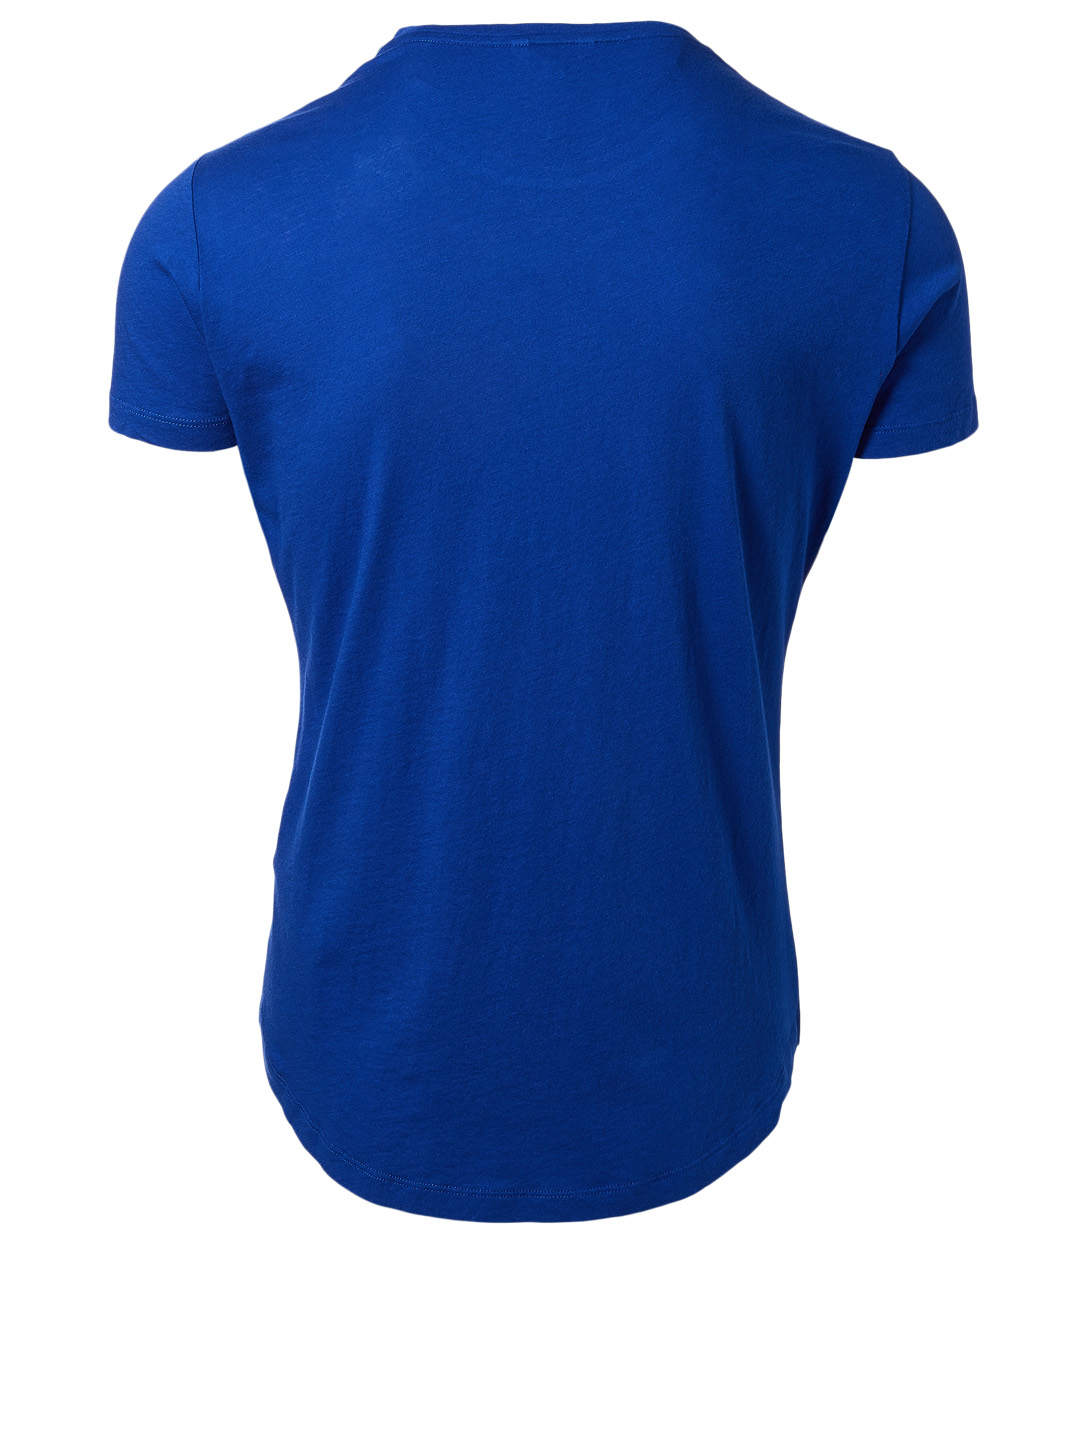 ORLEBAR BROWN OB-T Tailored-Fit T-Shirt Men's Blue